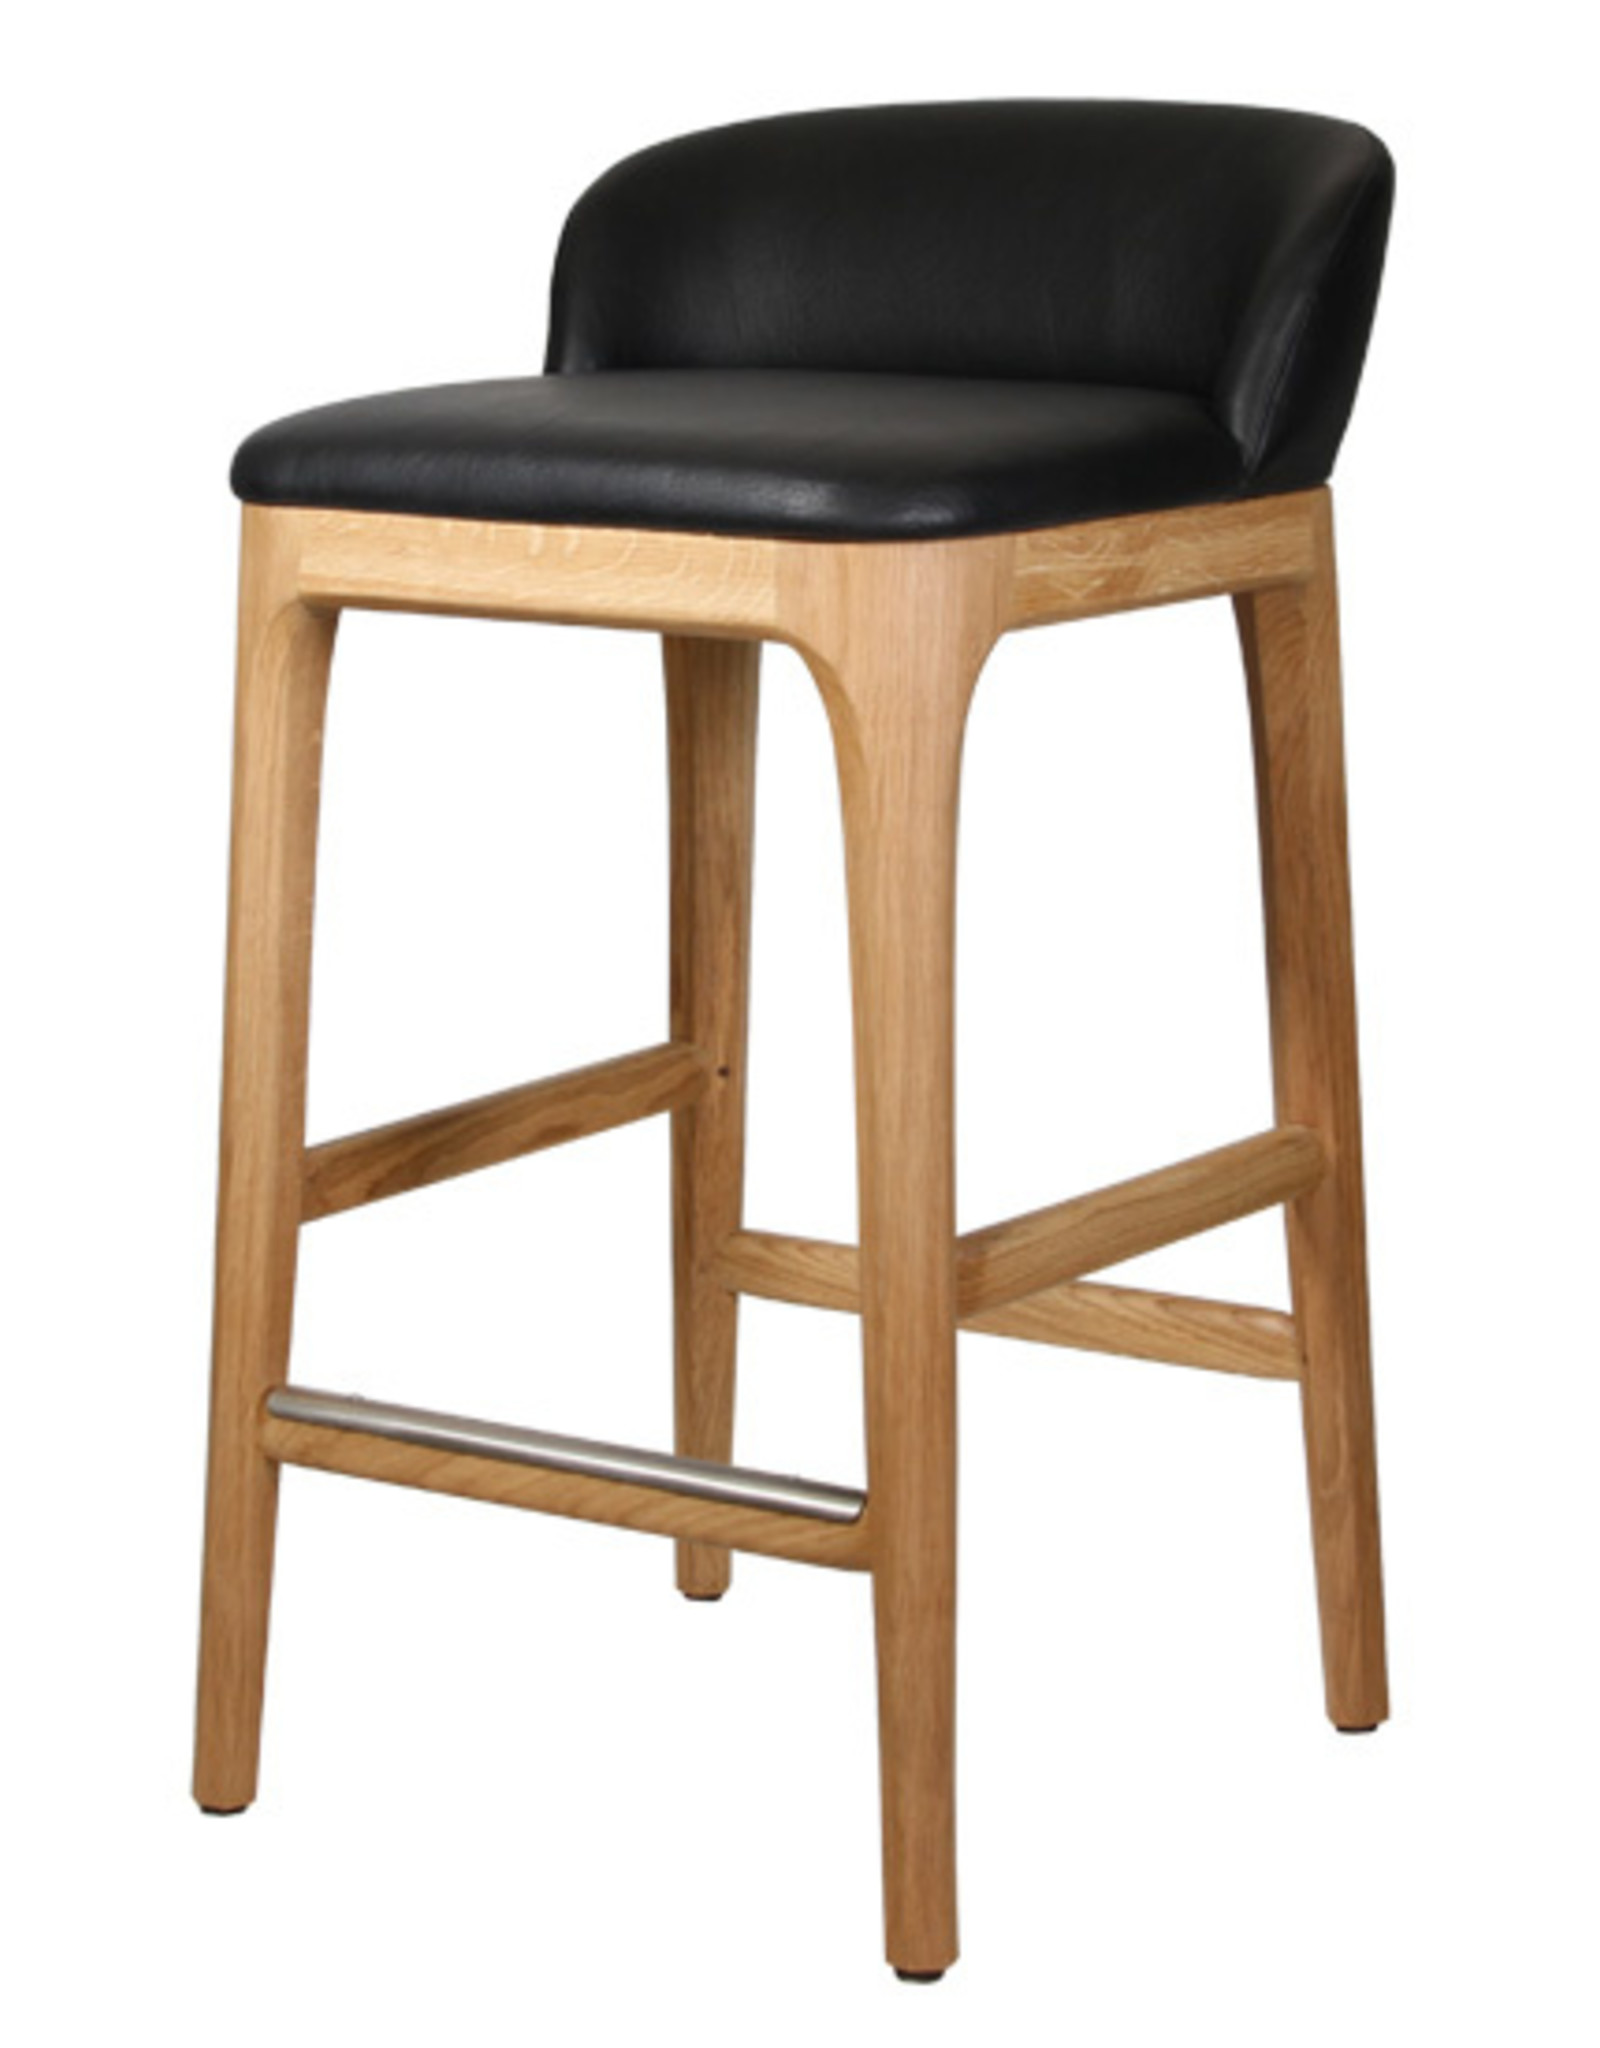 New York Kitchen Stool